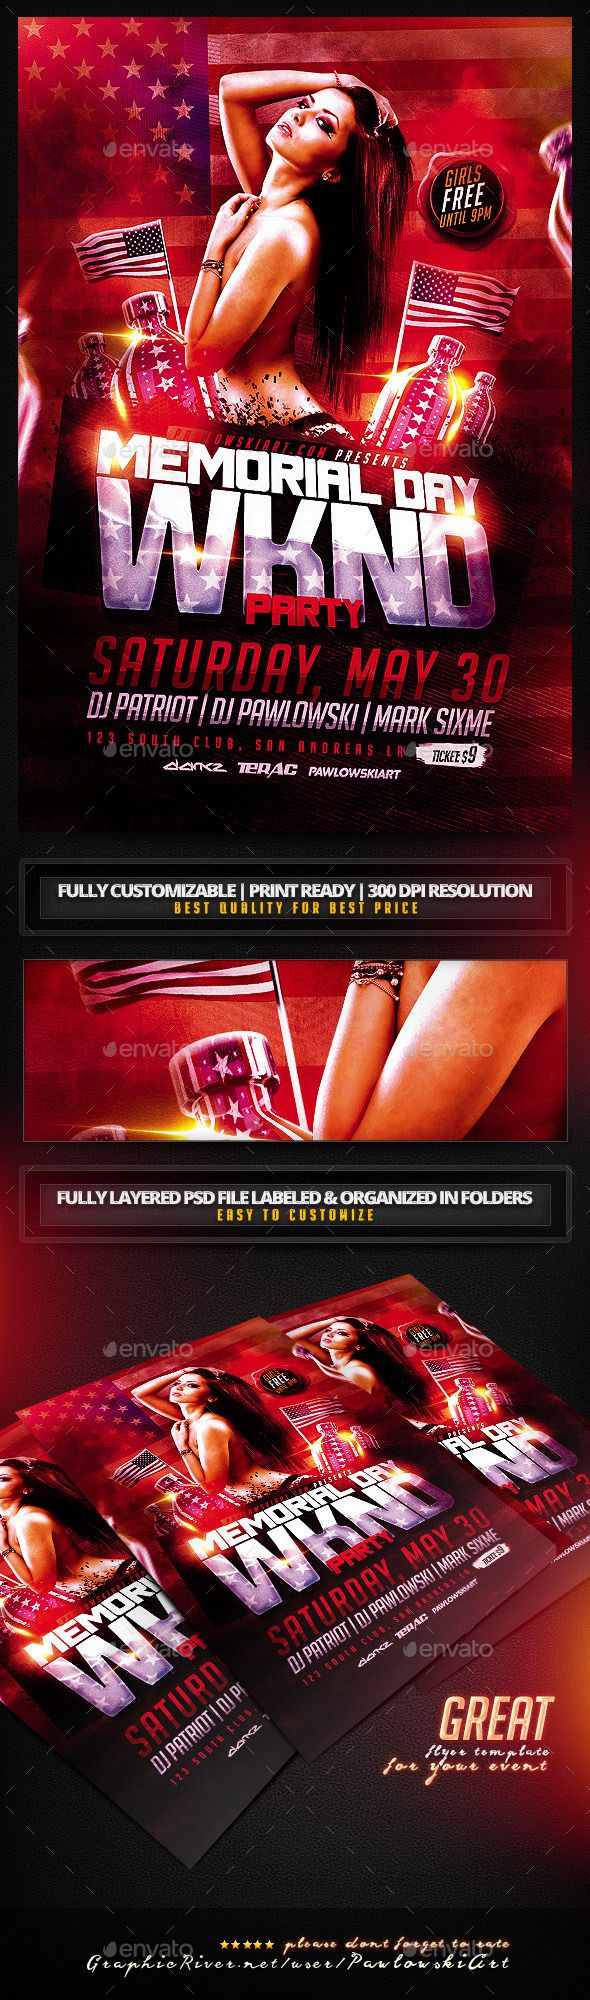 Best Flyer Design Templates Images On   Flyer Design